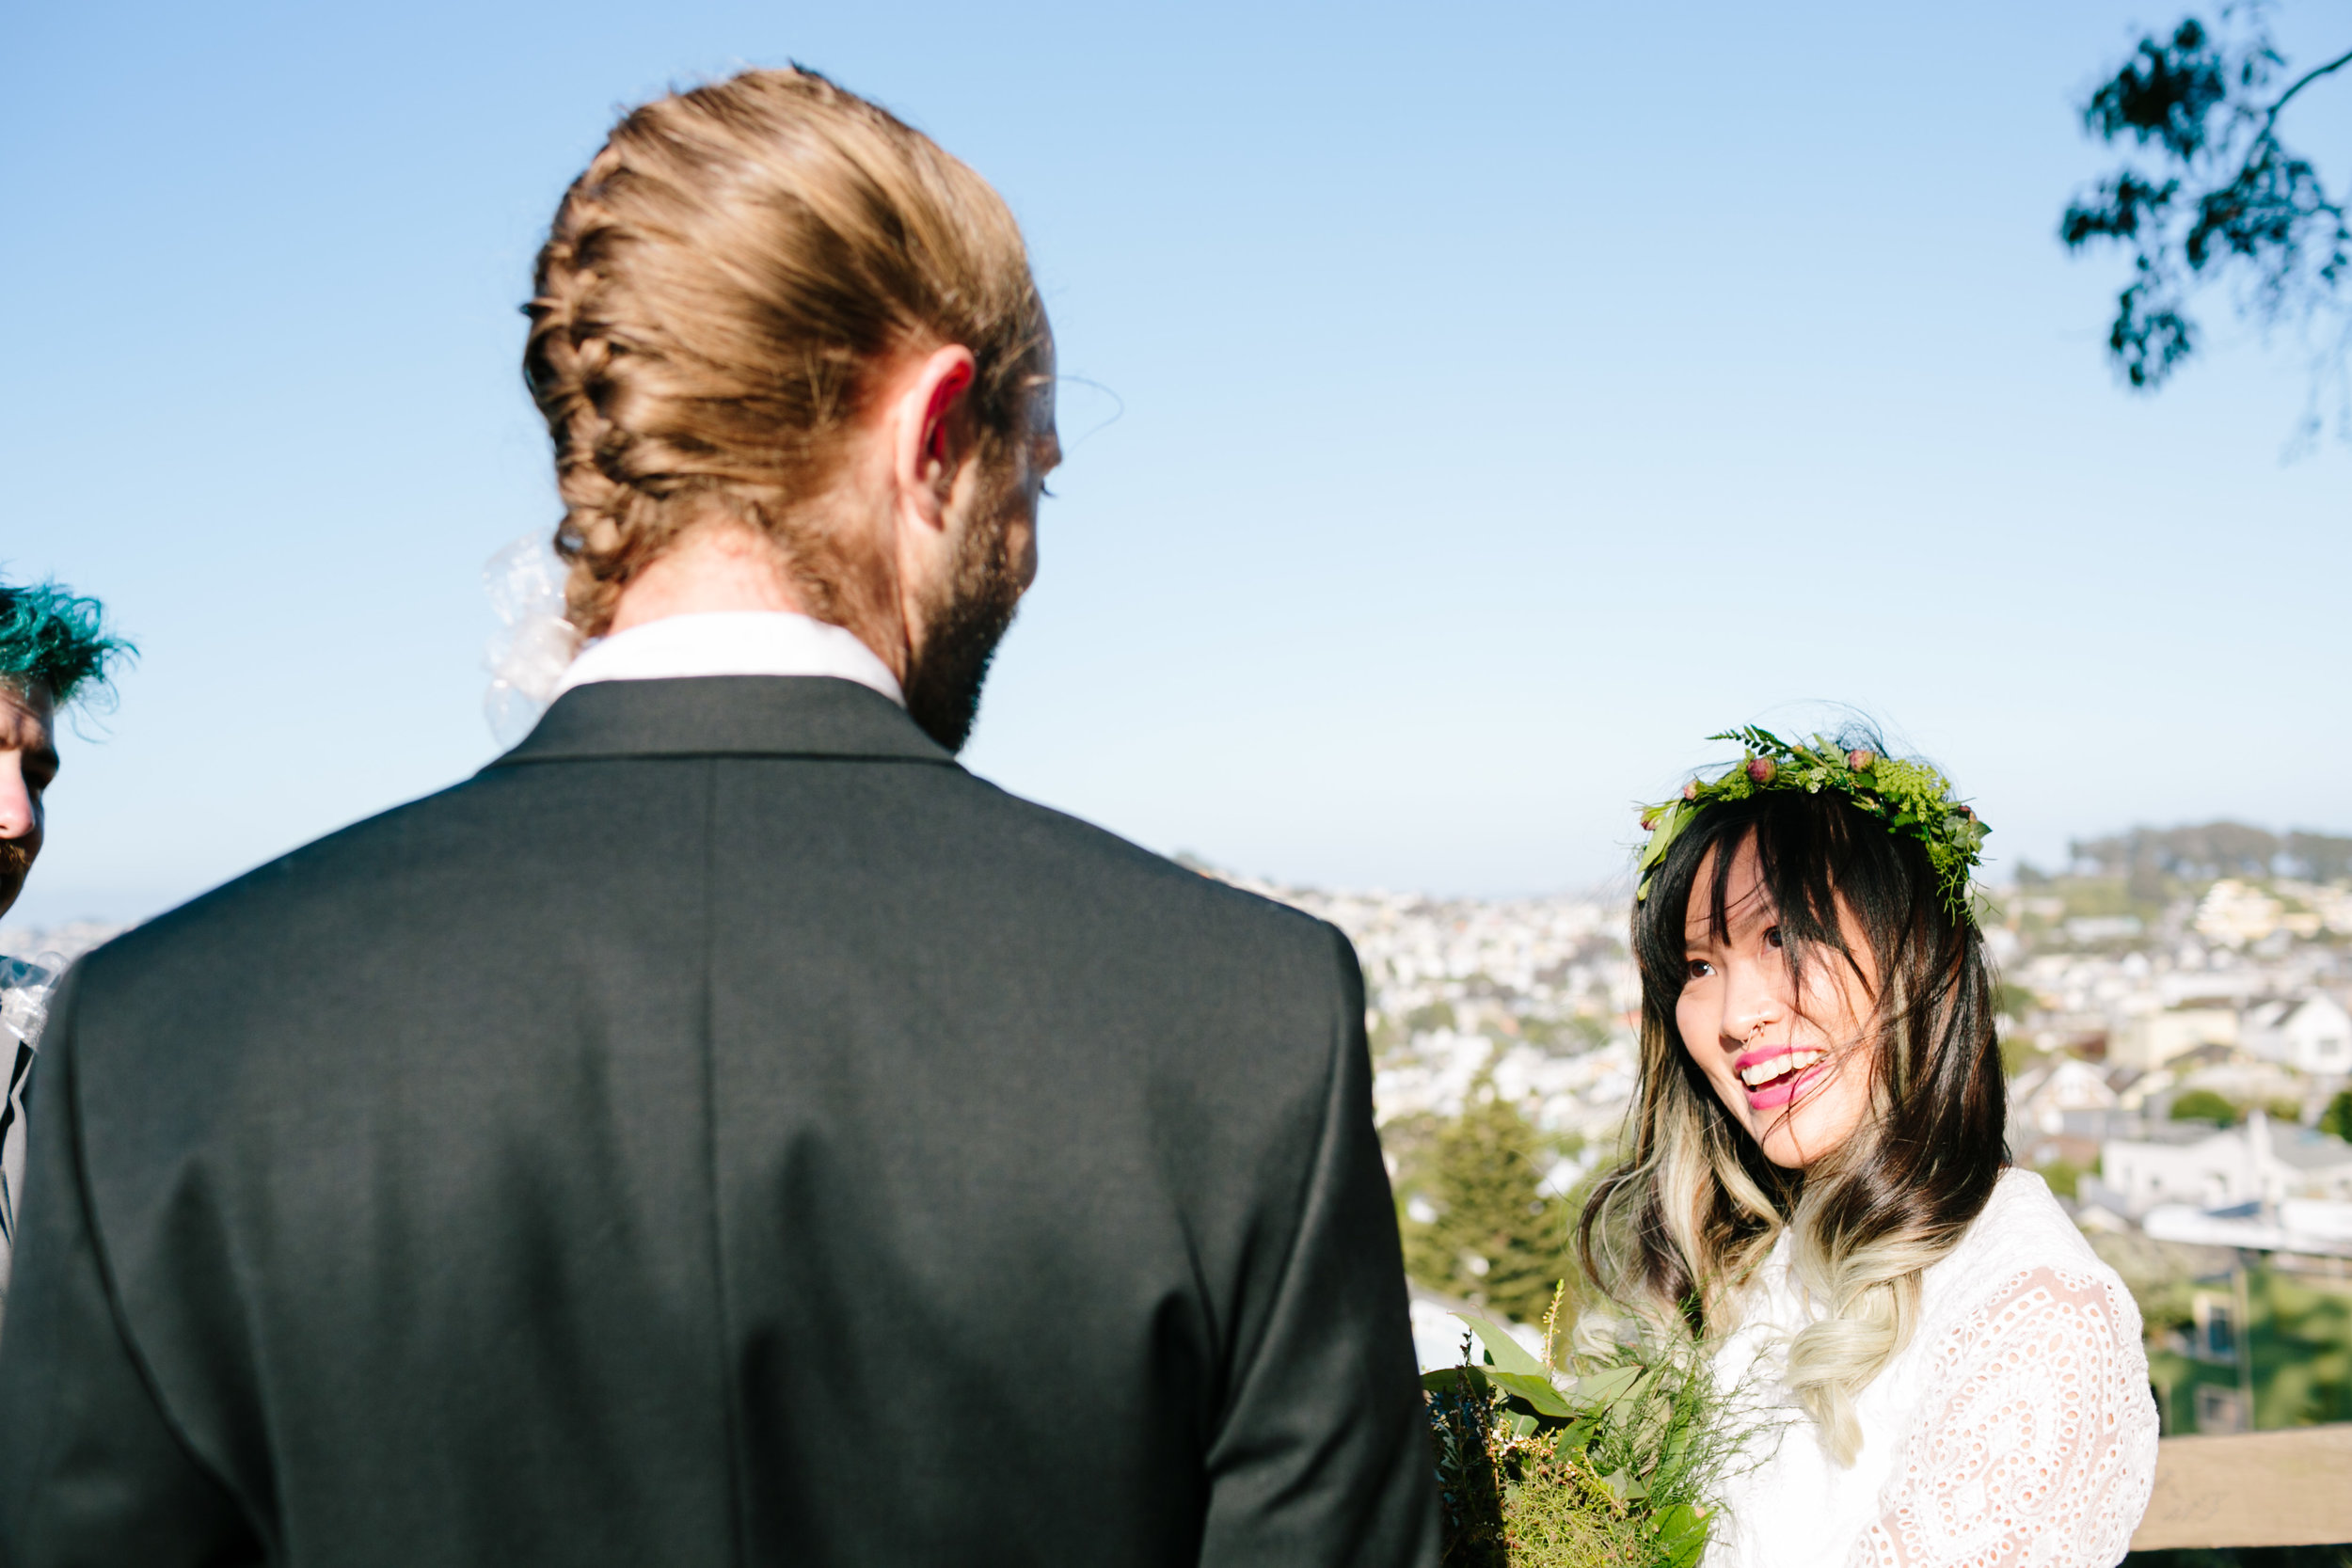 Seeing how handsome the Groom looked (with braids!)